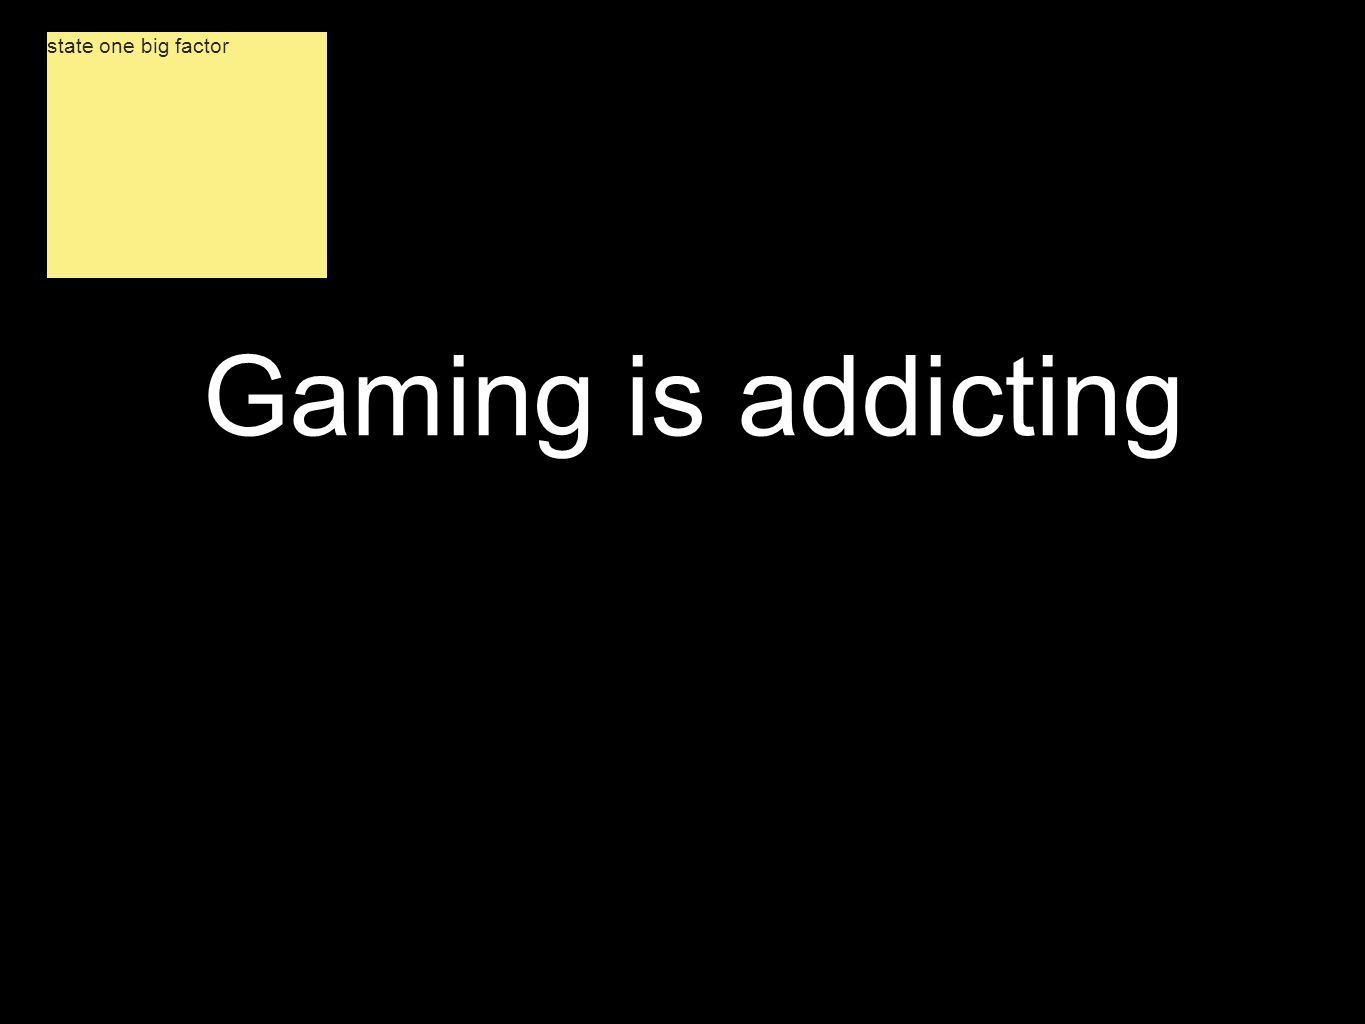 Gaming is addicting state one big factor